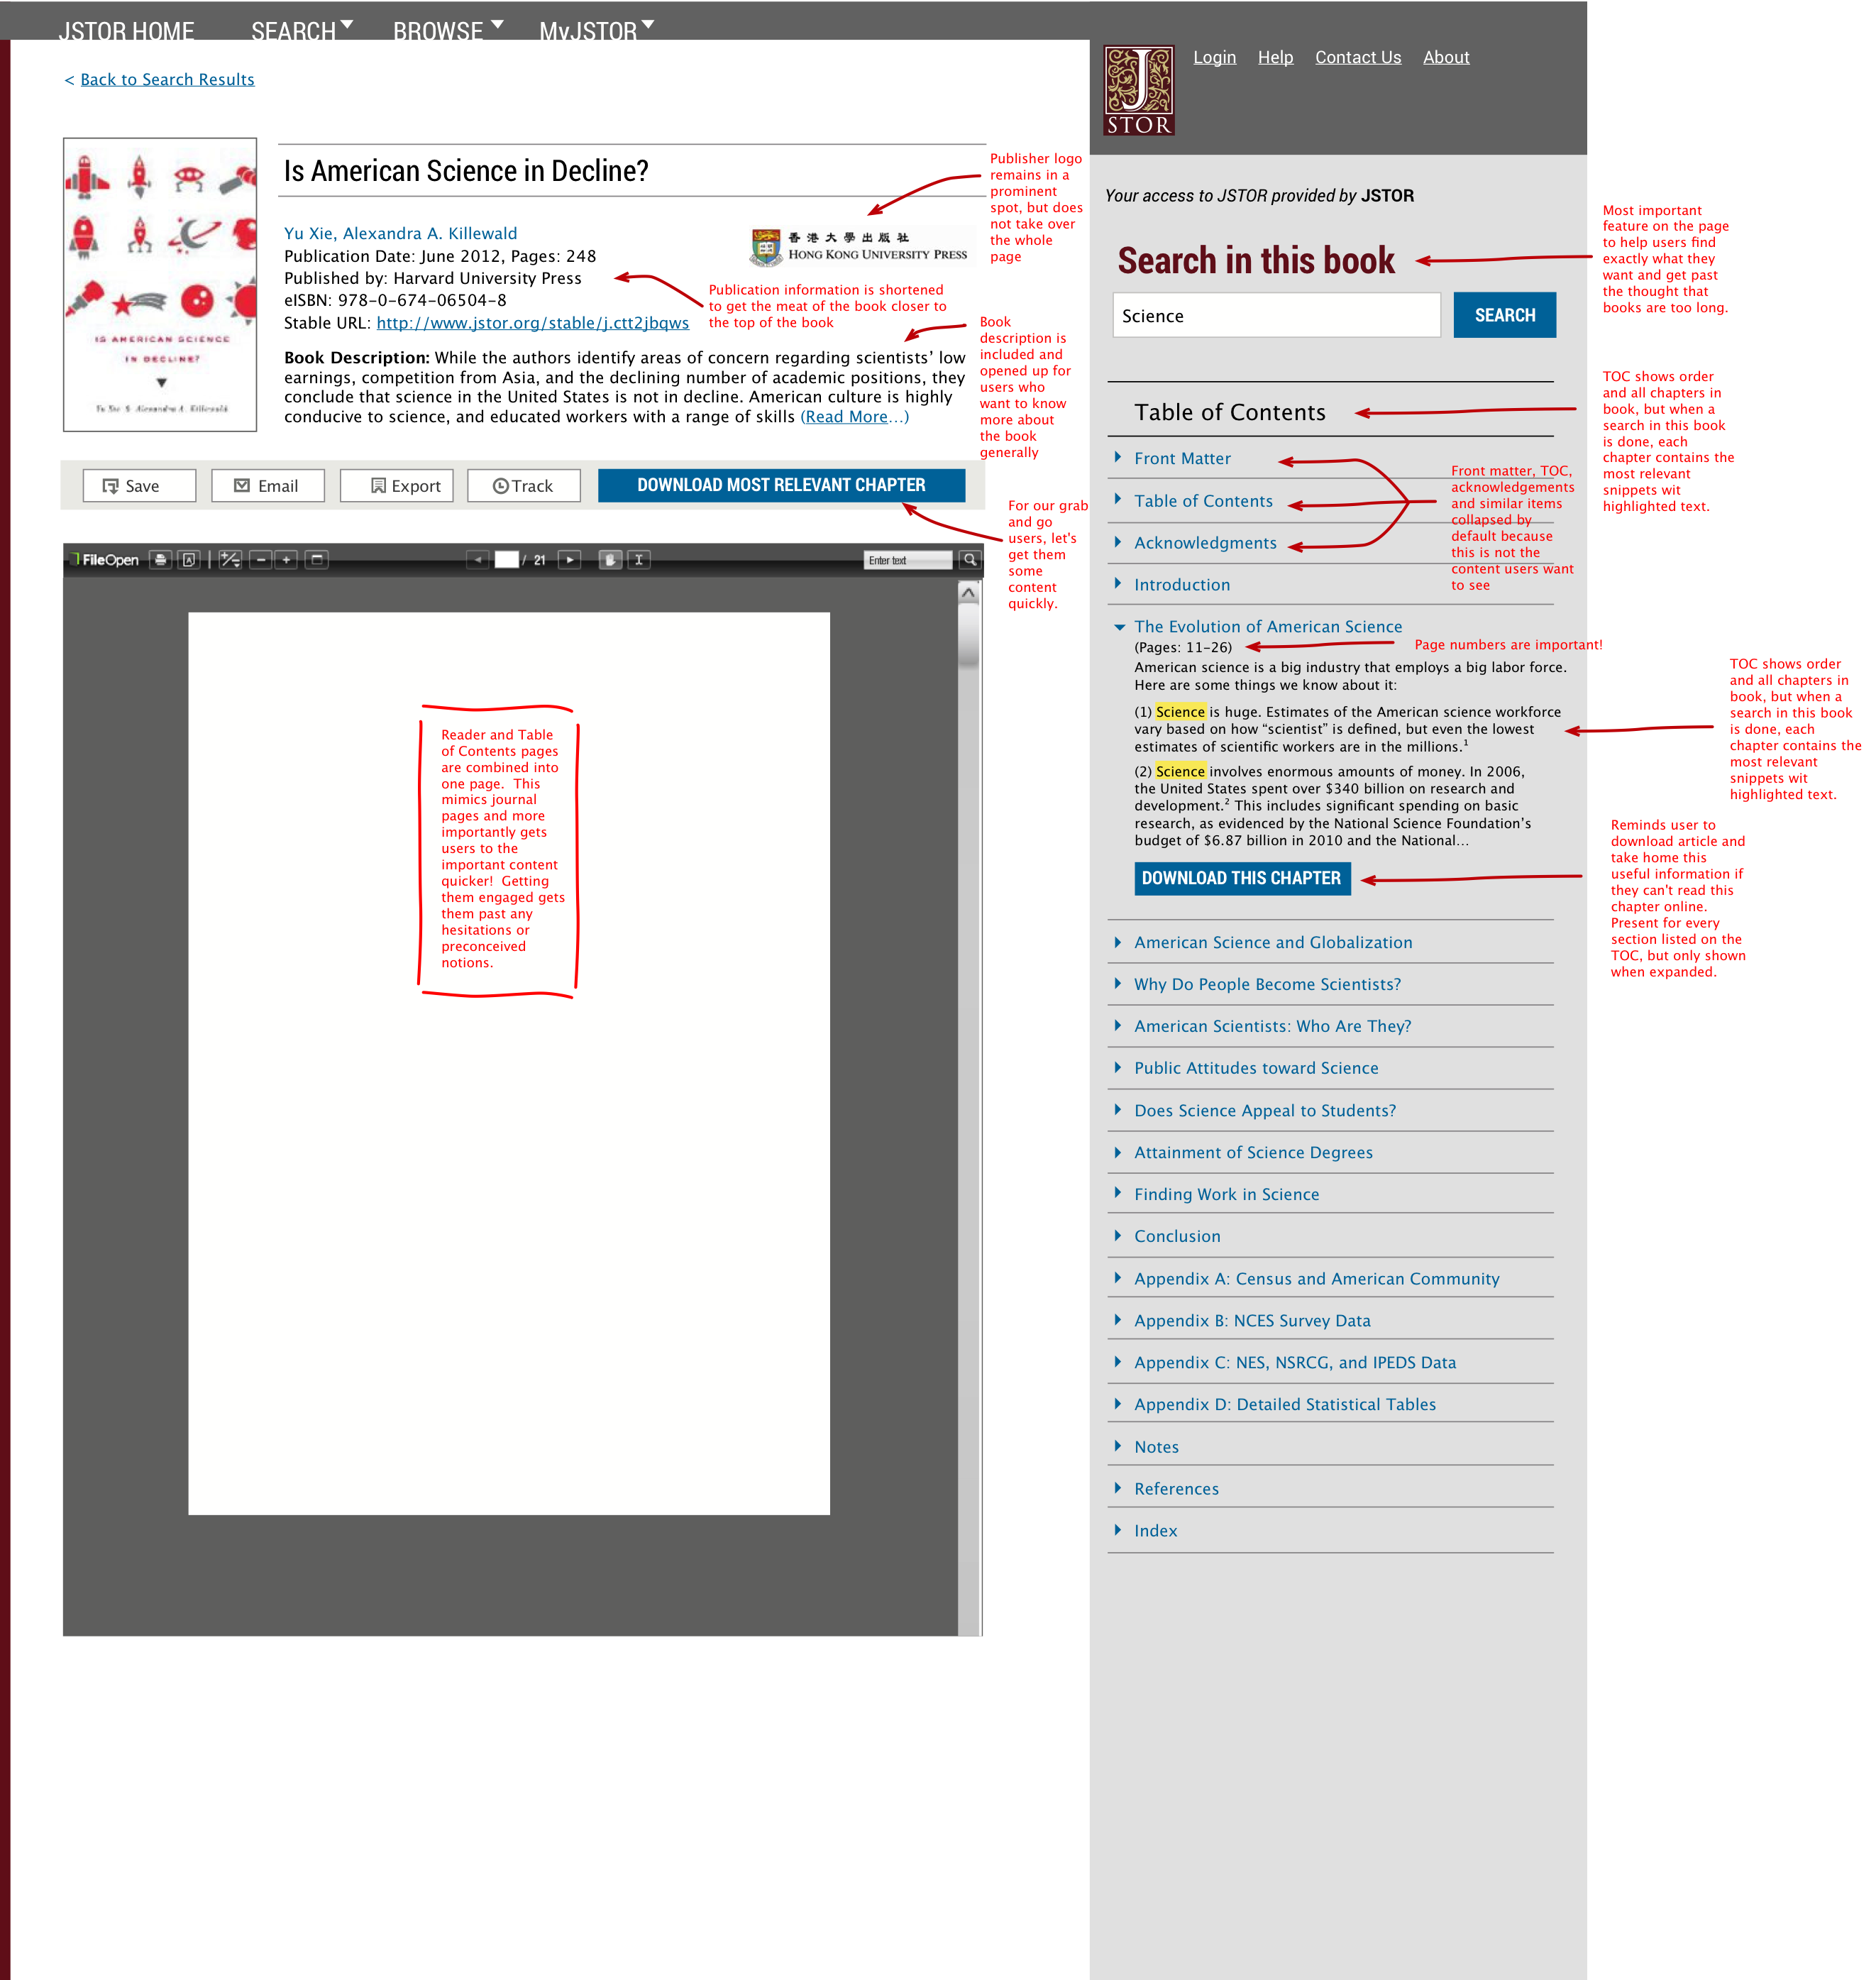 Mockup for presenting books on JSTOR (in collaboration with visual design)